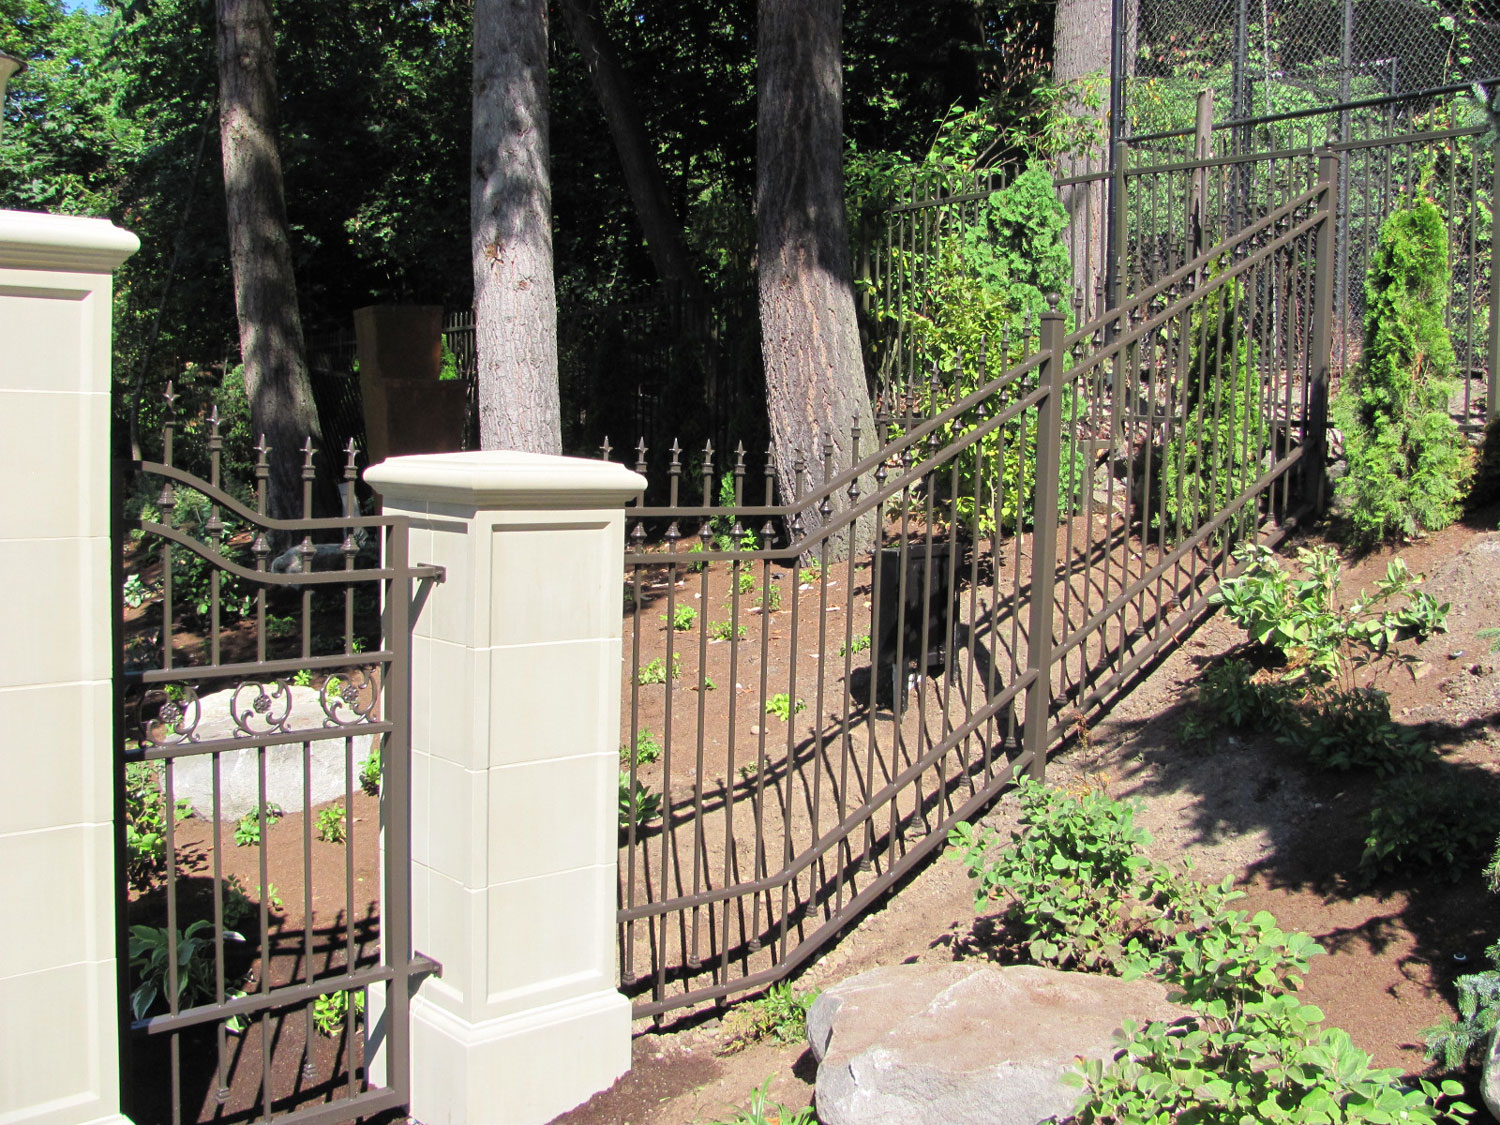 Automatic Gate and Fence - Side Fence - Seattle, WA